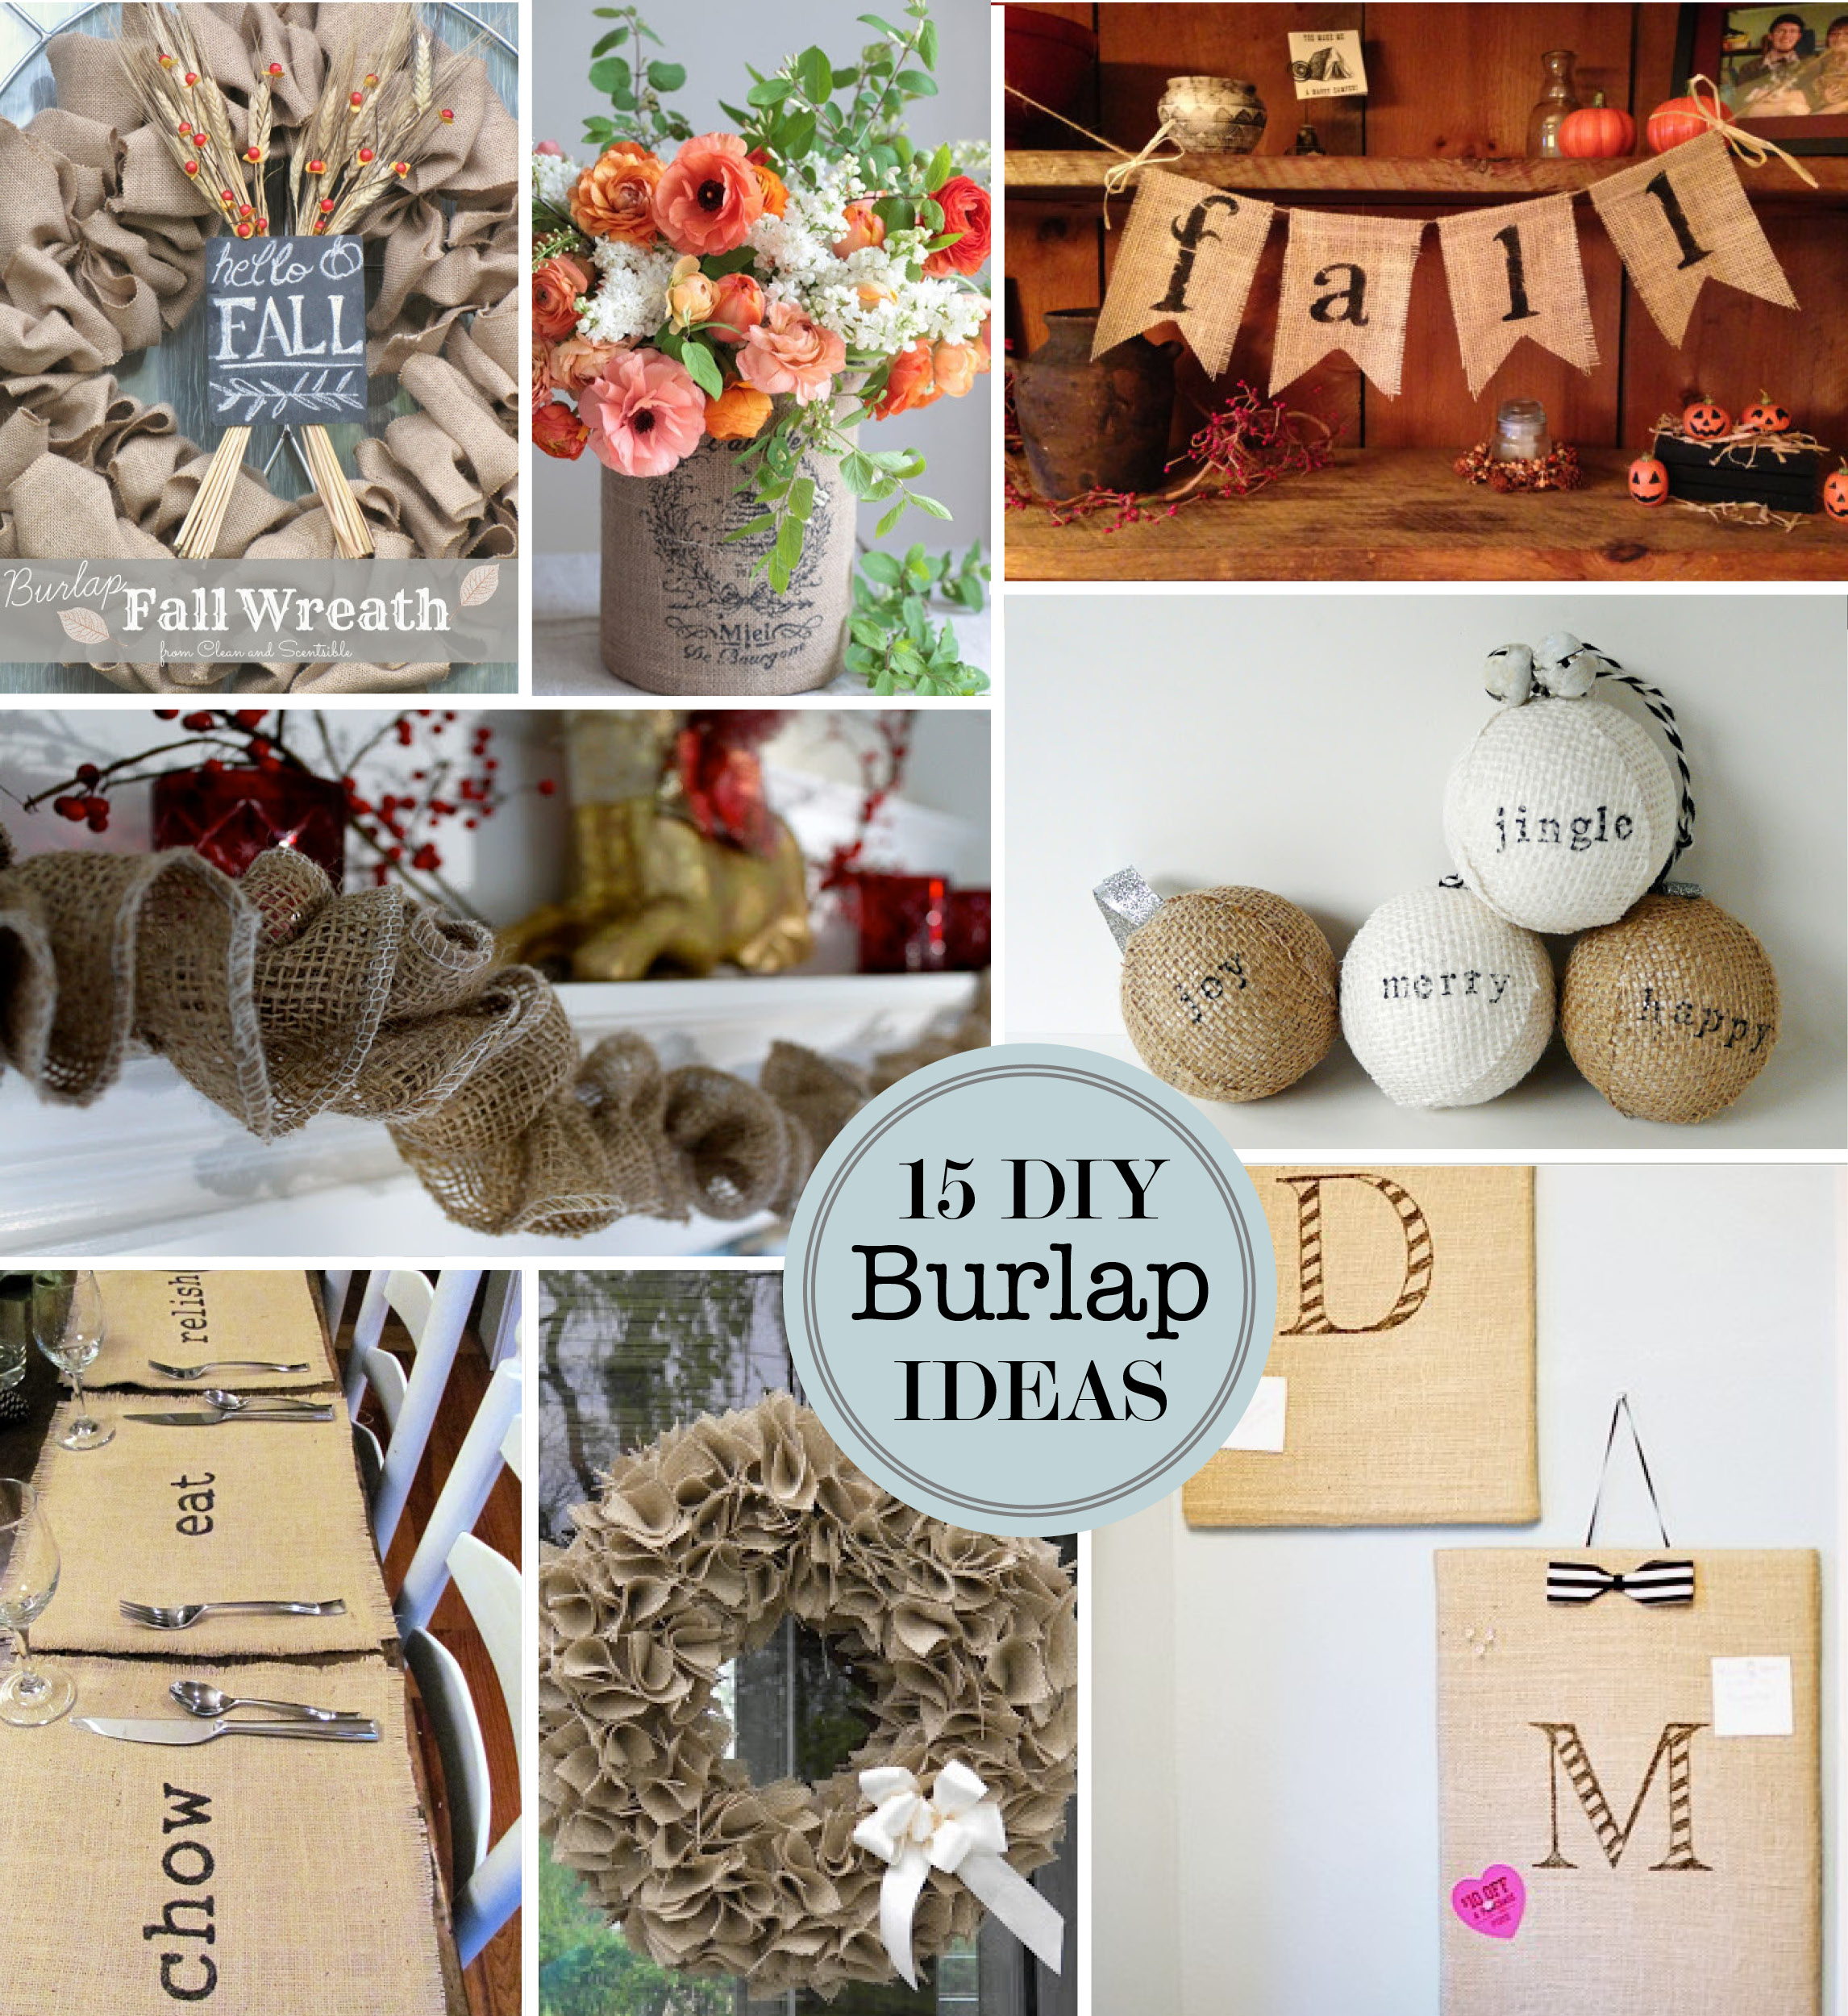 15 DIY Burlap Craft Ideas  Perpetually Daydreaming